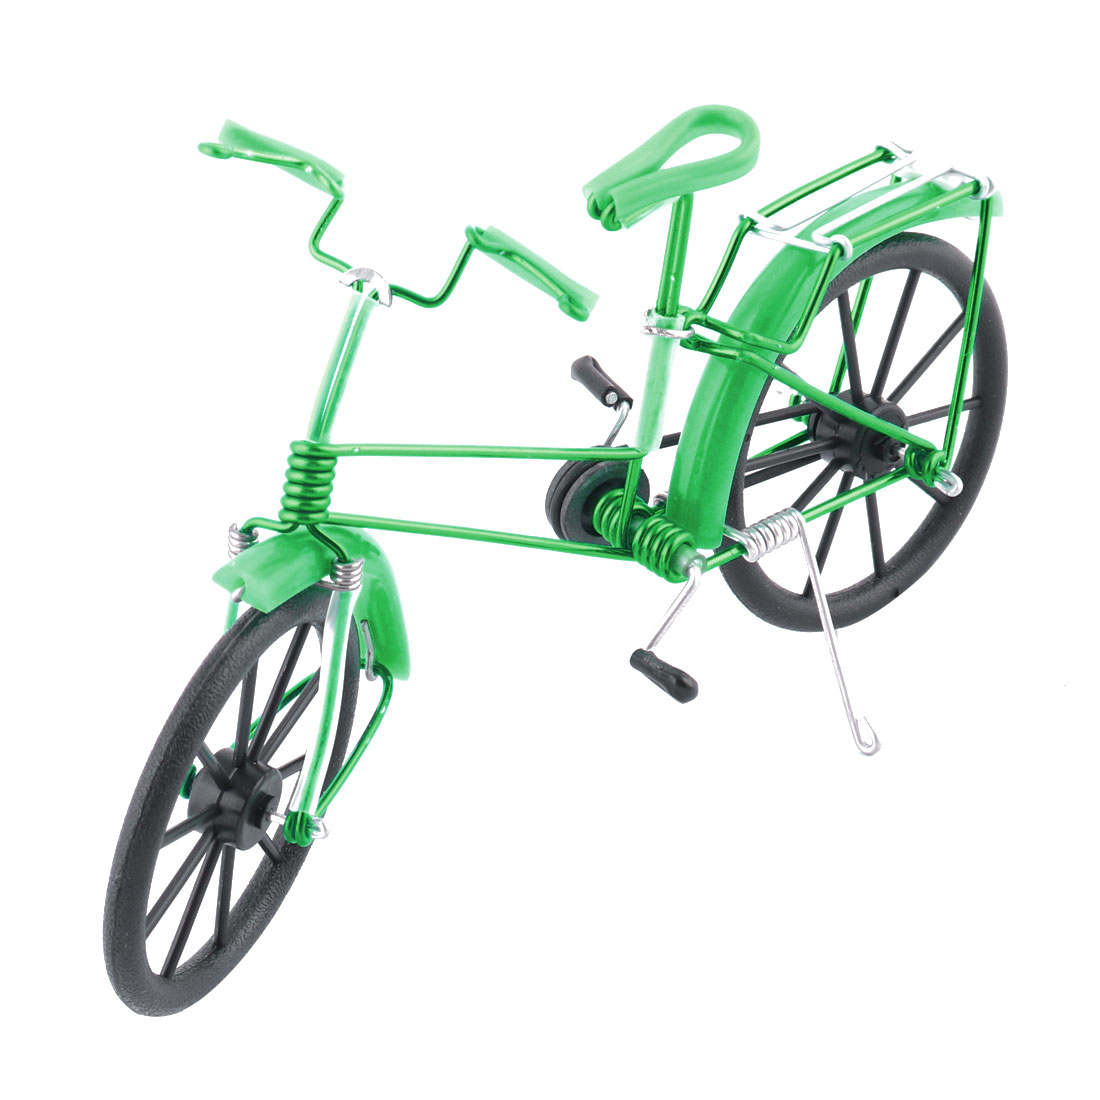 Aluminium Alloy Vintage Style Table Decor Handmade Toy Gift Bicycle Model Green